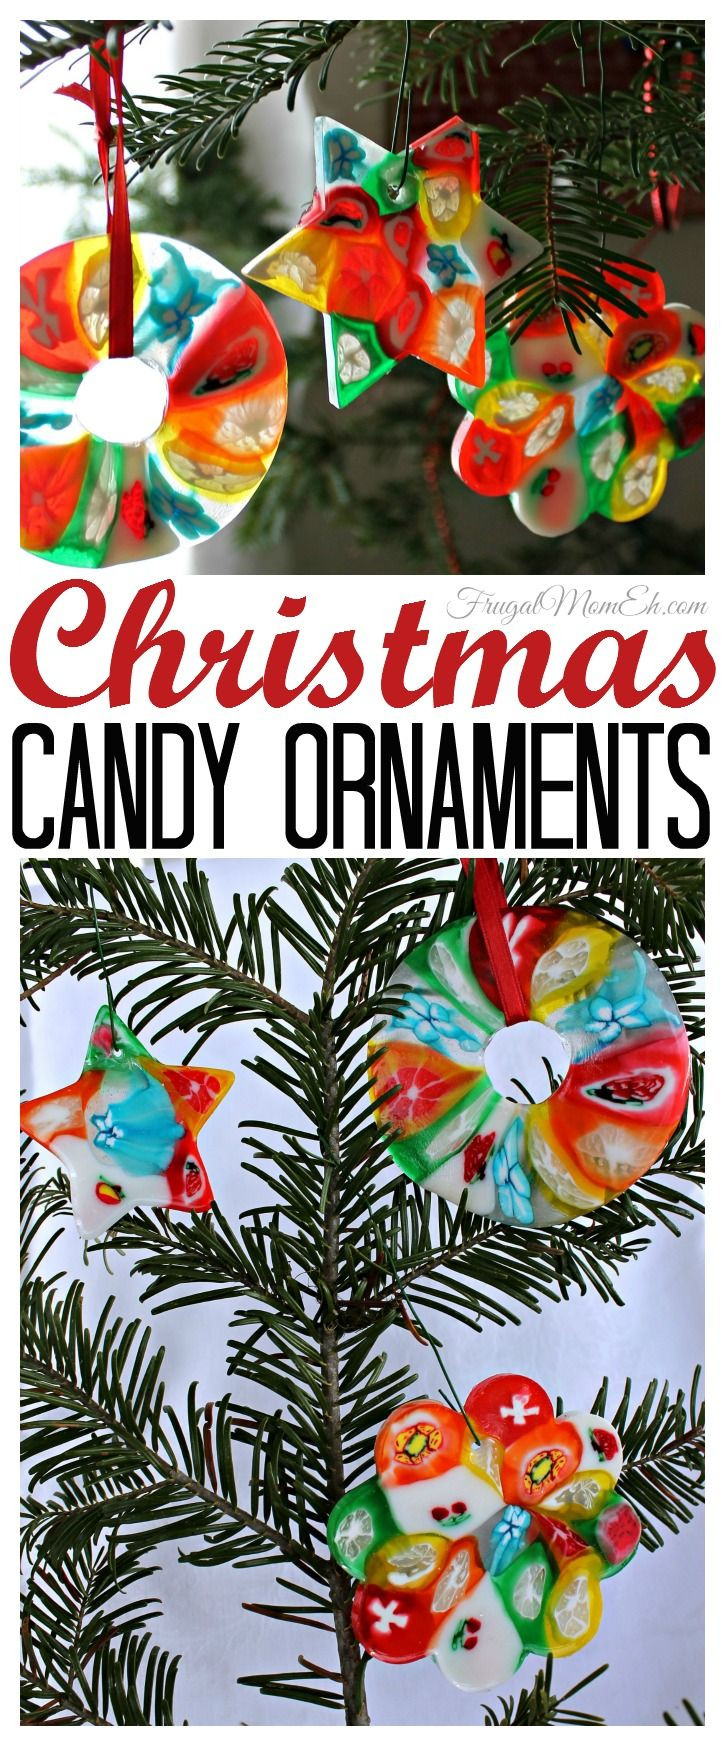 Christmas Candy Ornaments  Christmas Candy Ornaments